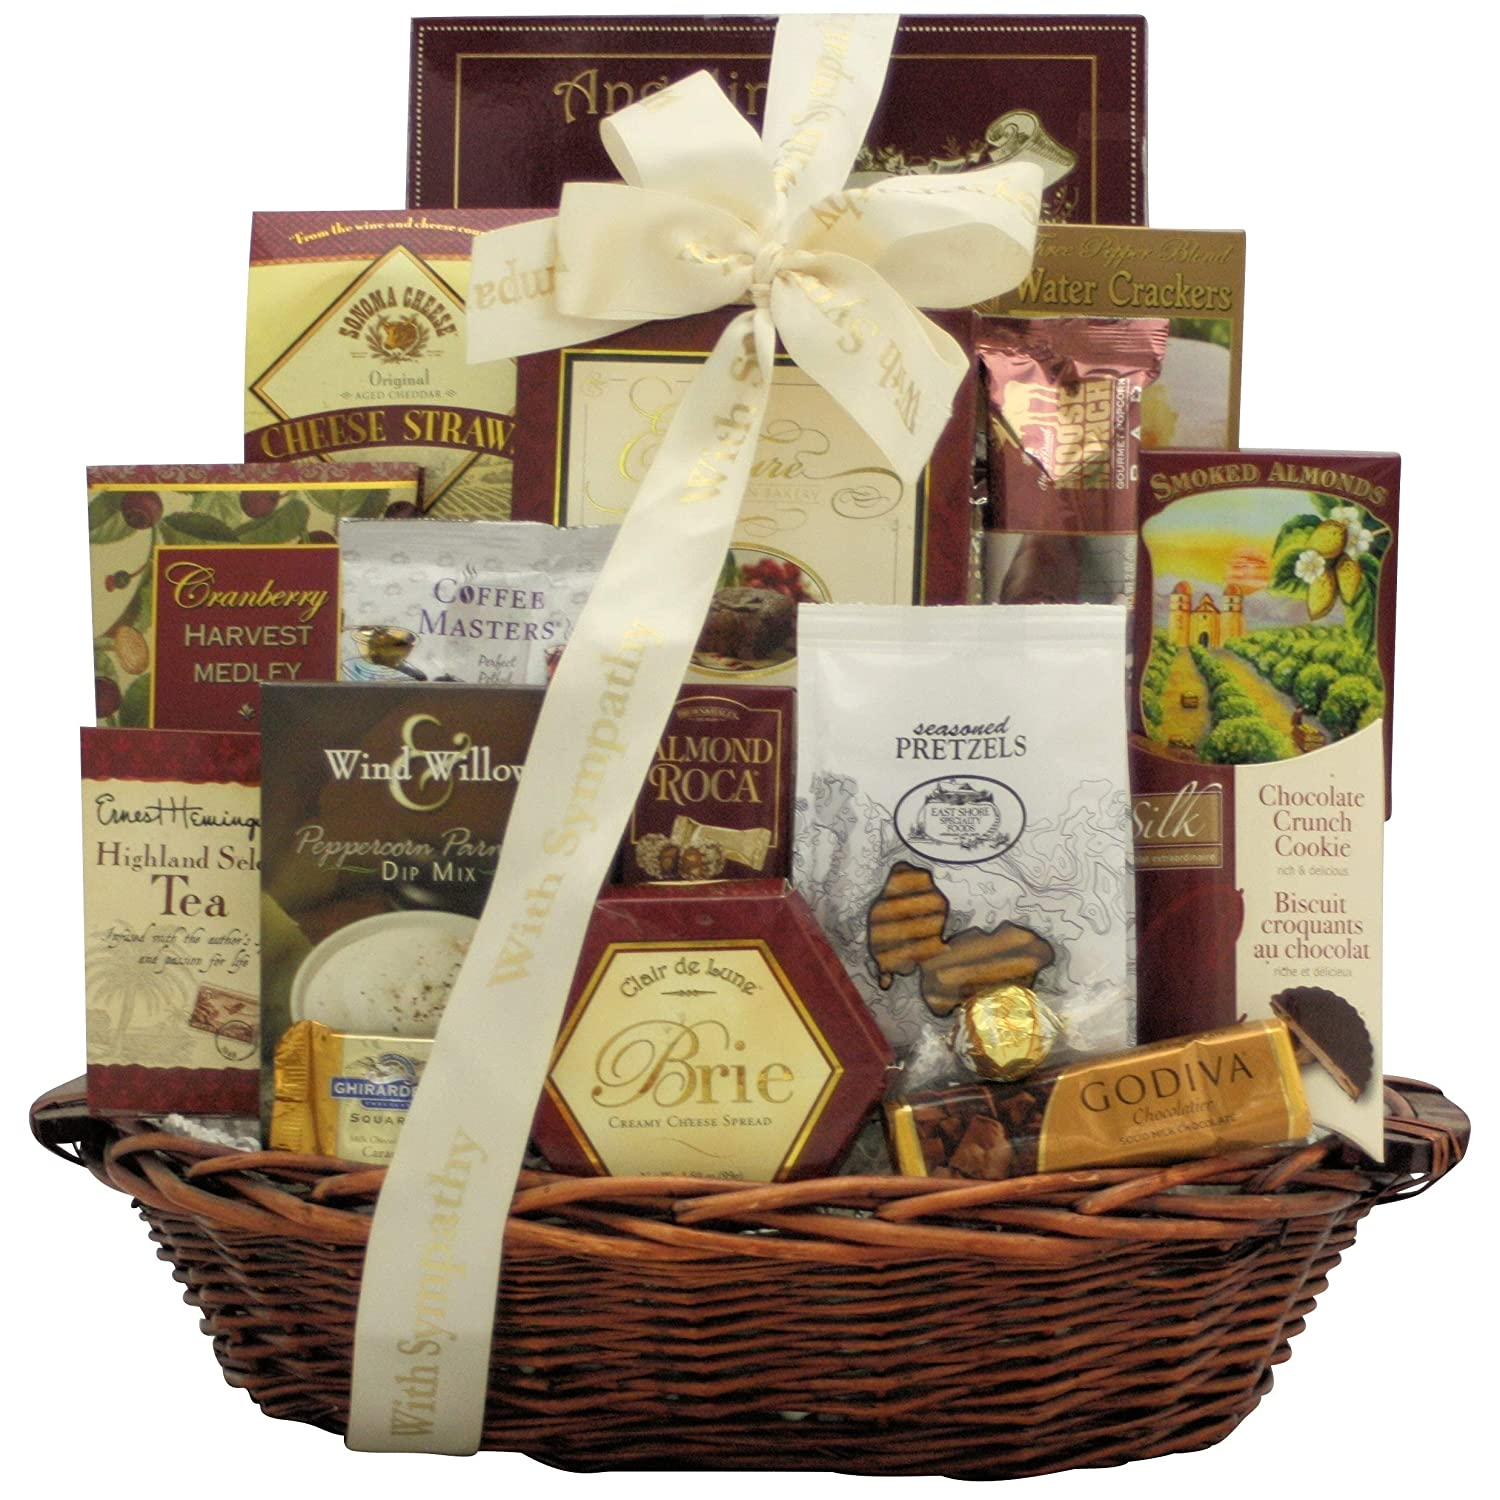 Amazon.com : Our Sincere Condolences: Sympathy Gift Basket : Gourmet Snacks And Hors Doeuvres Gifts : Grocery & Gourmet Food